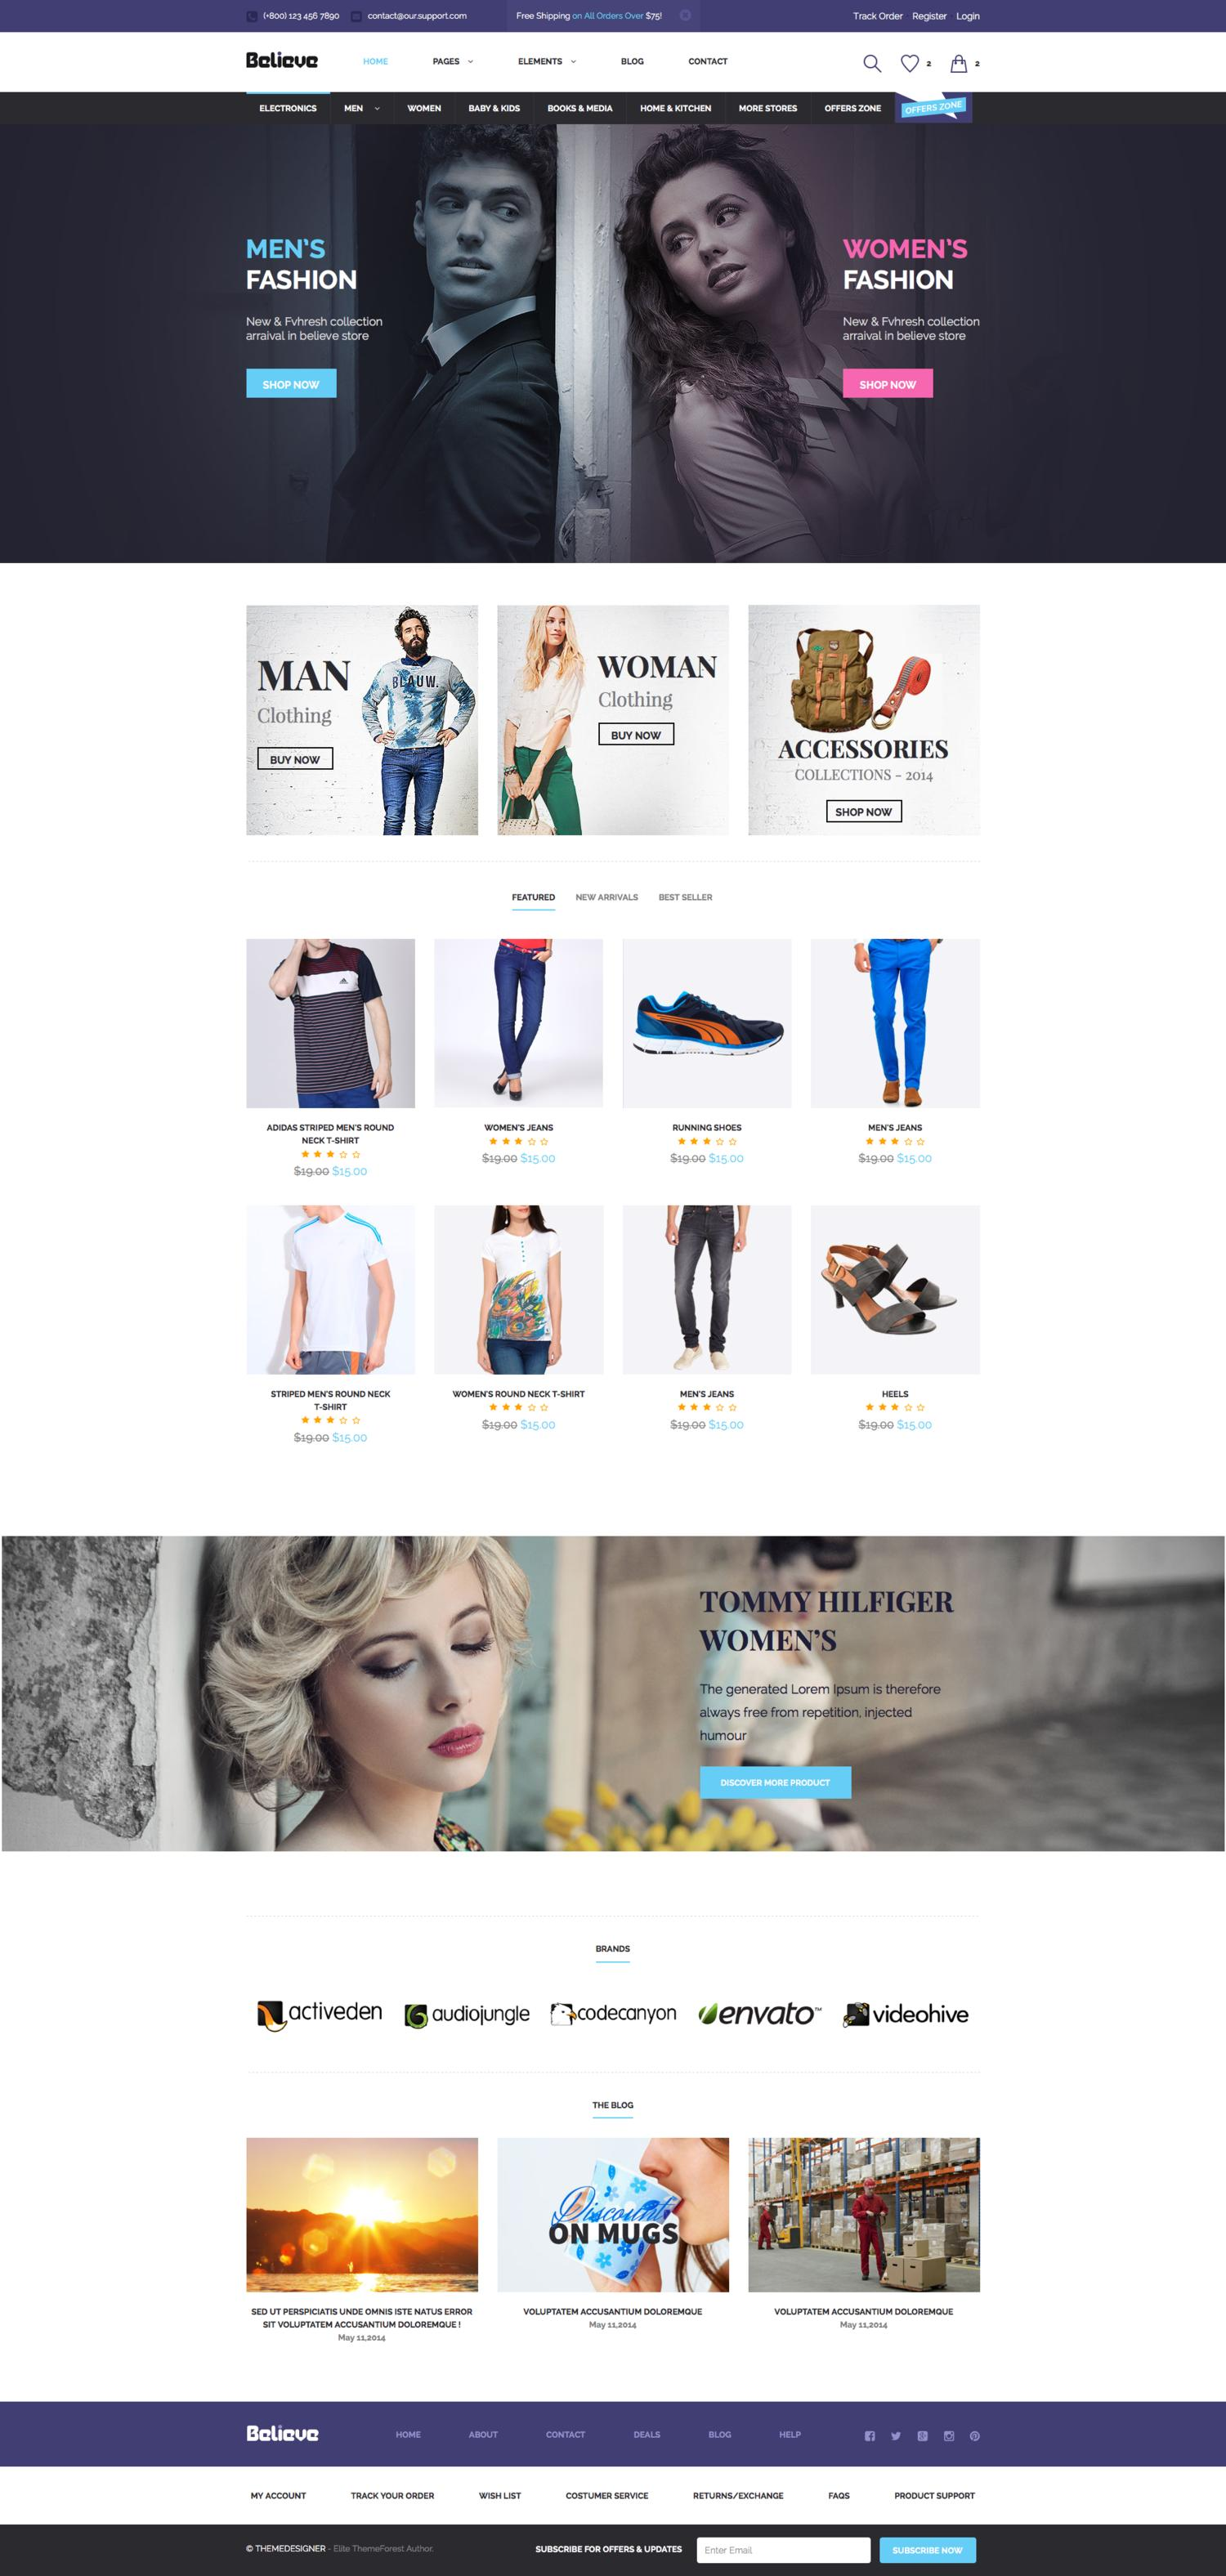 PSD to WordPress Theme Service with Marketplace Standard by minimalthemes - 94505